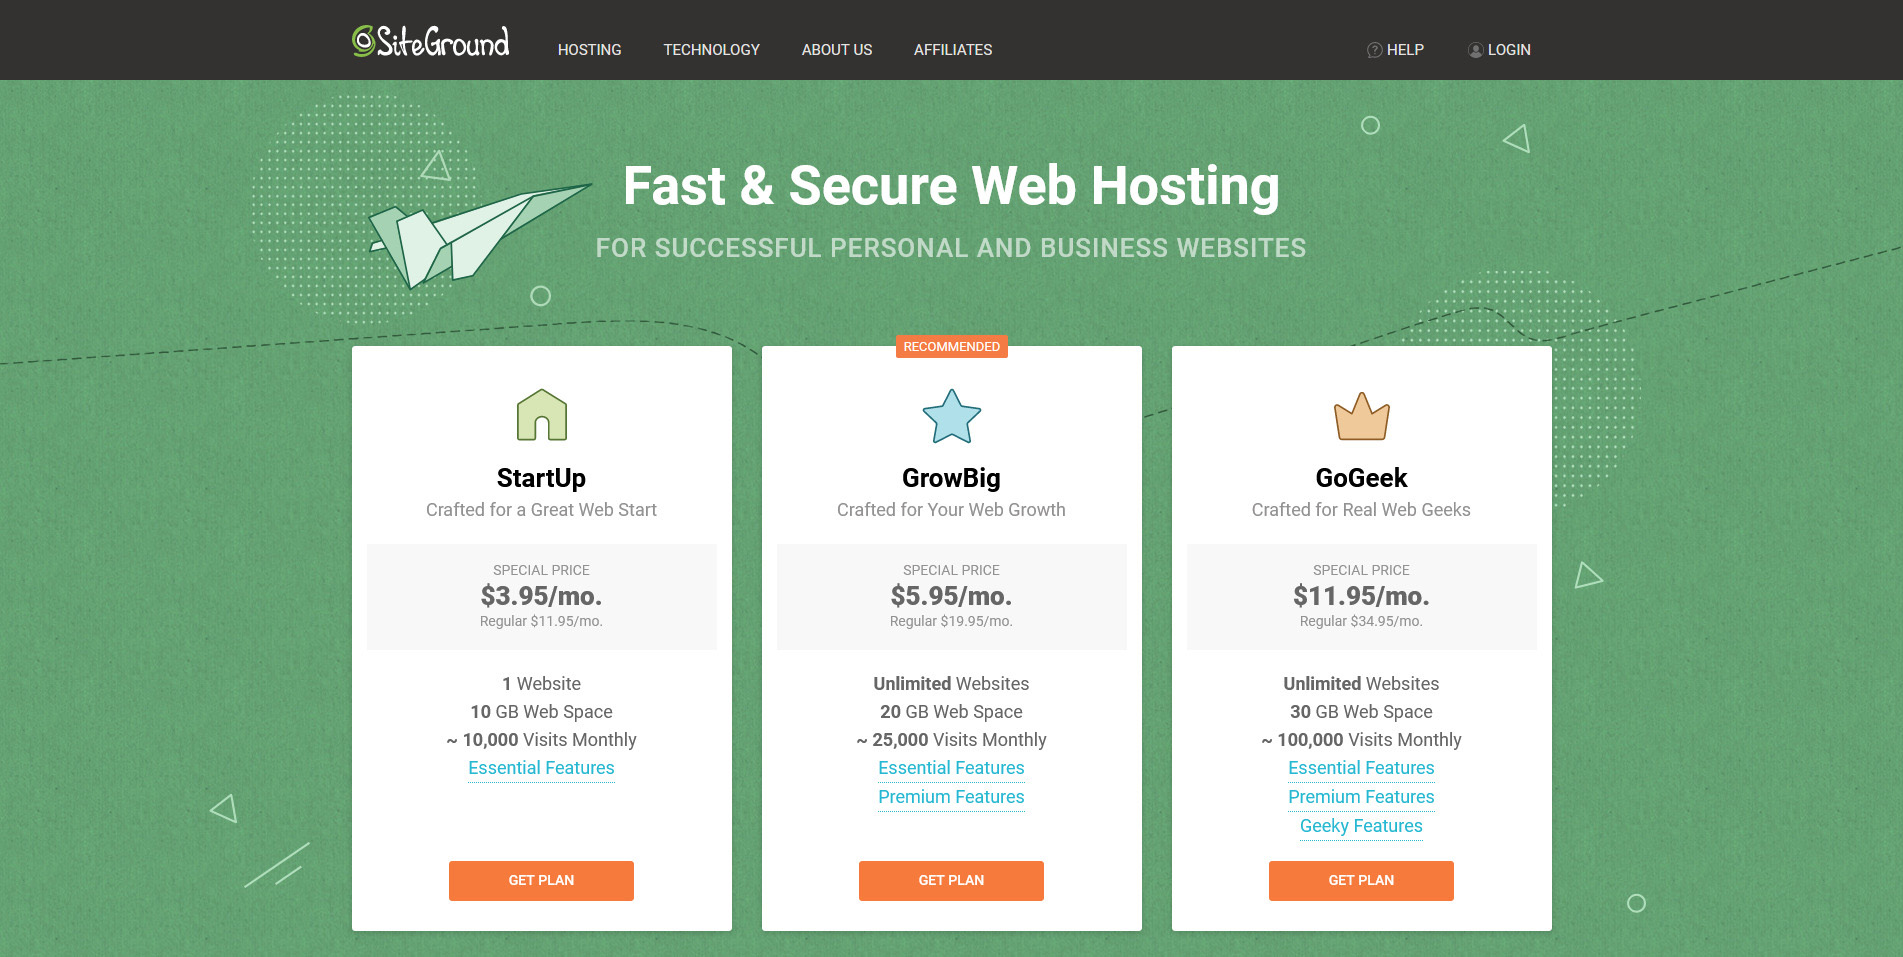 6 Siteground Web Hosting Services